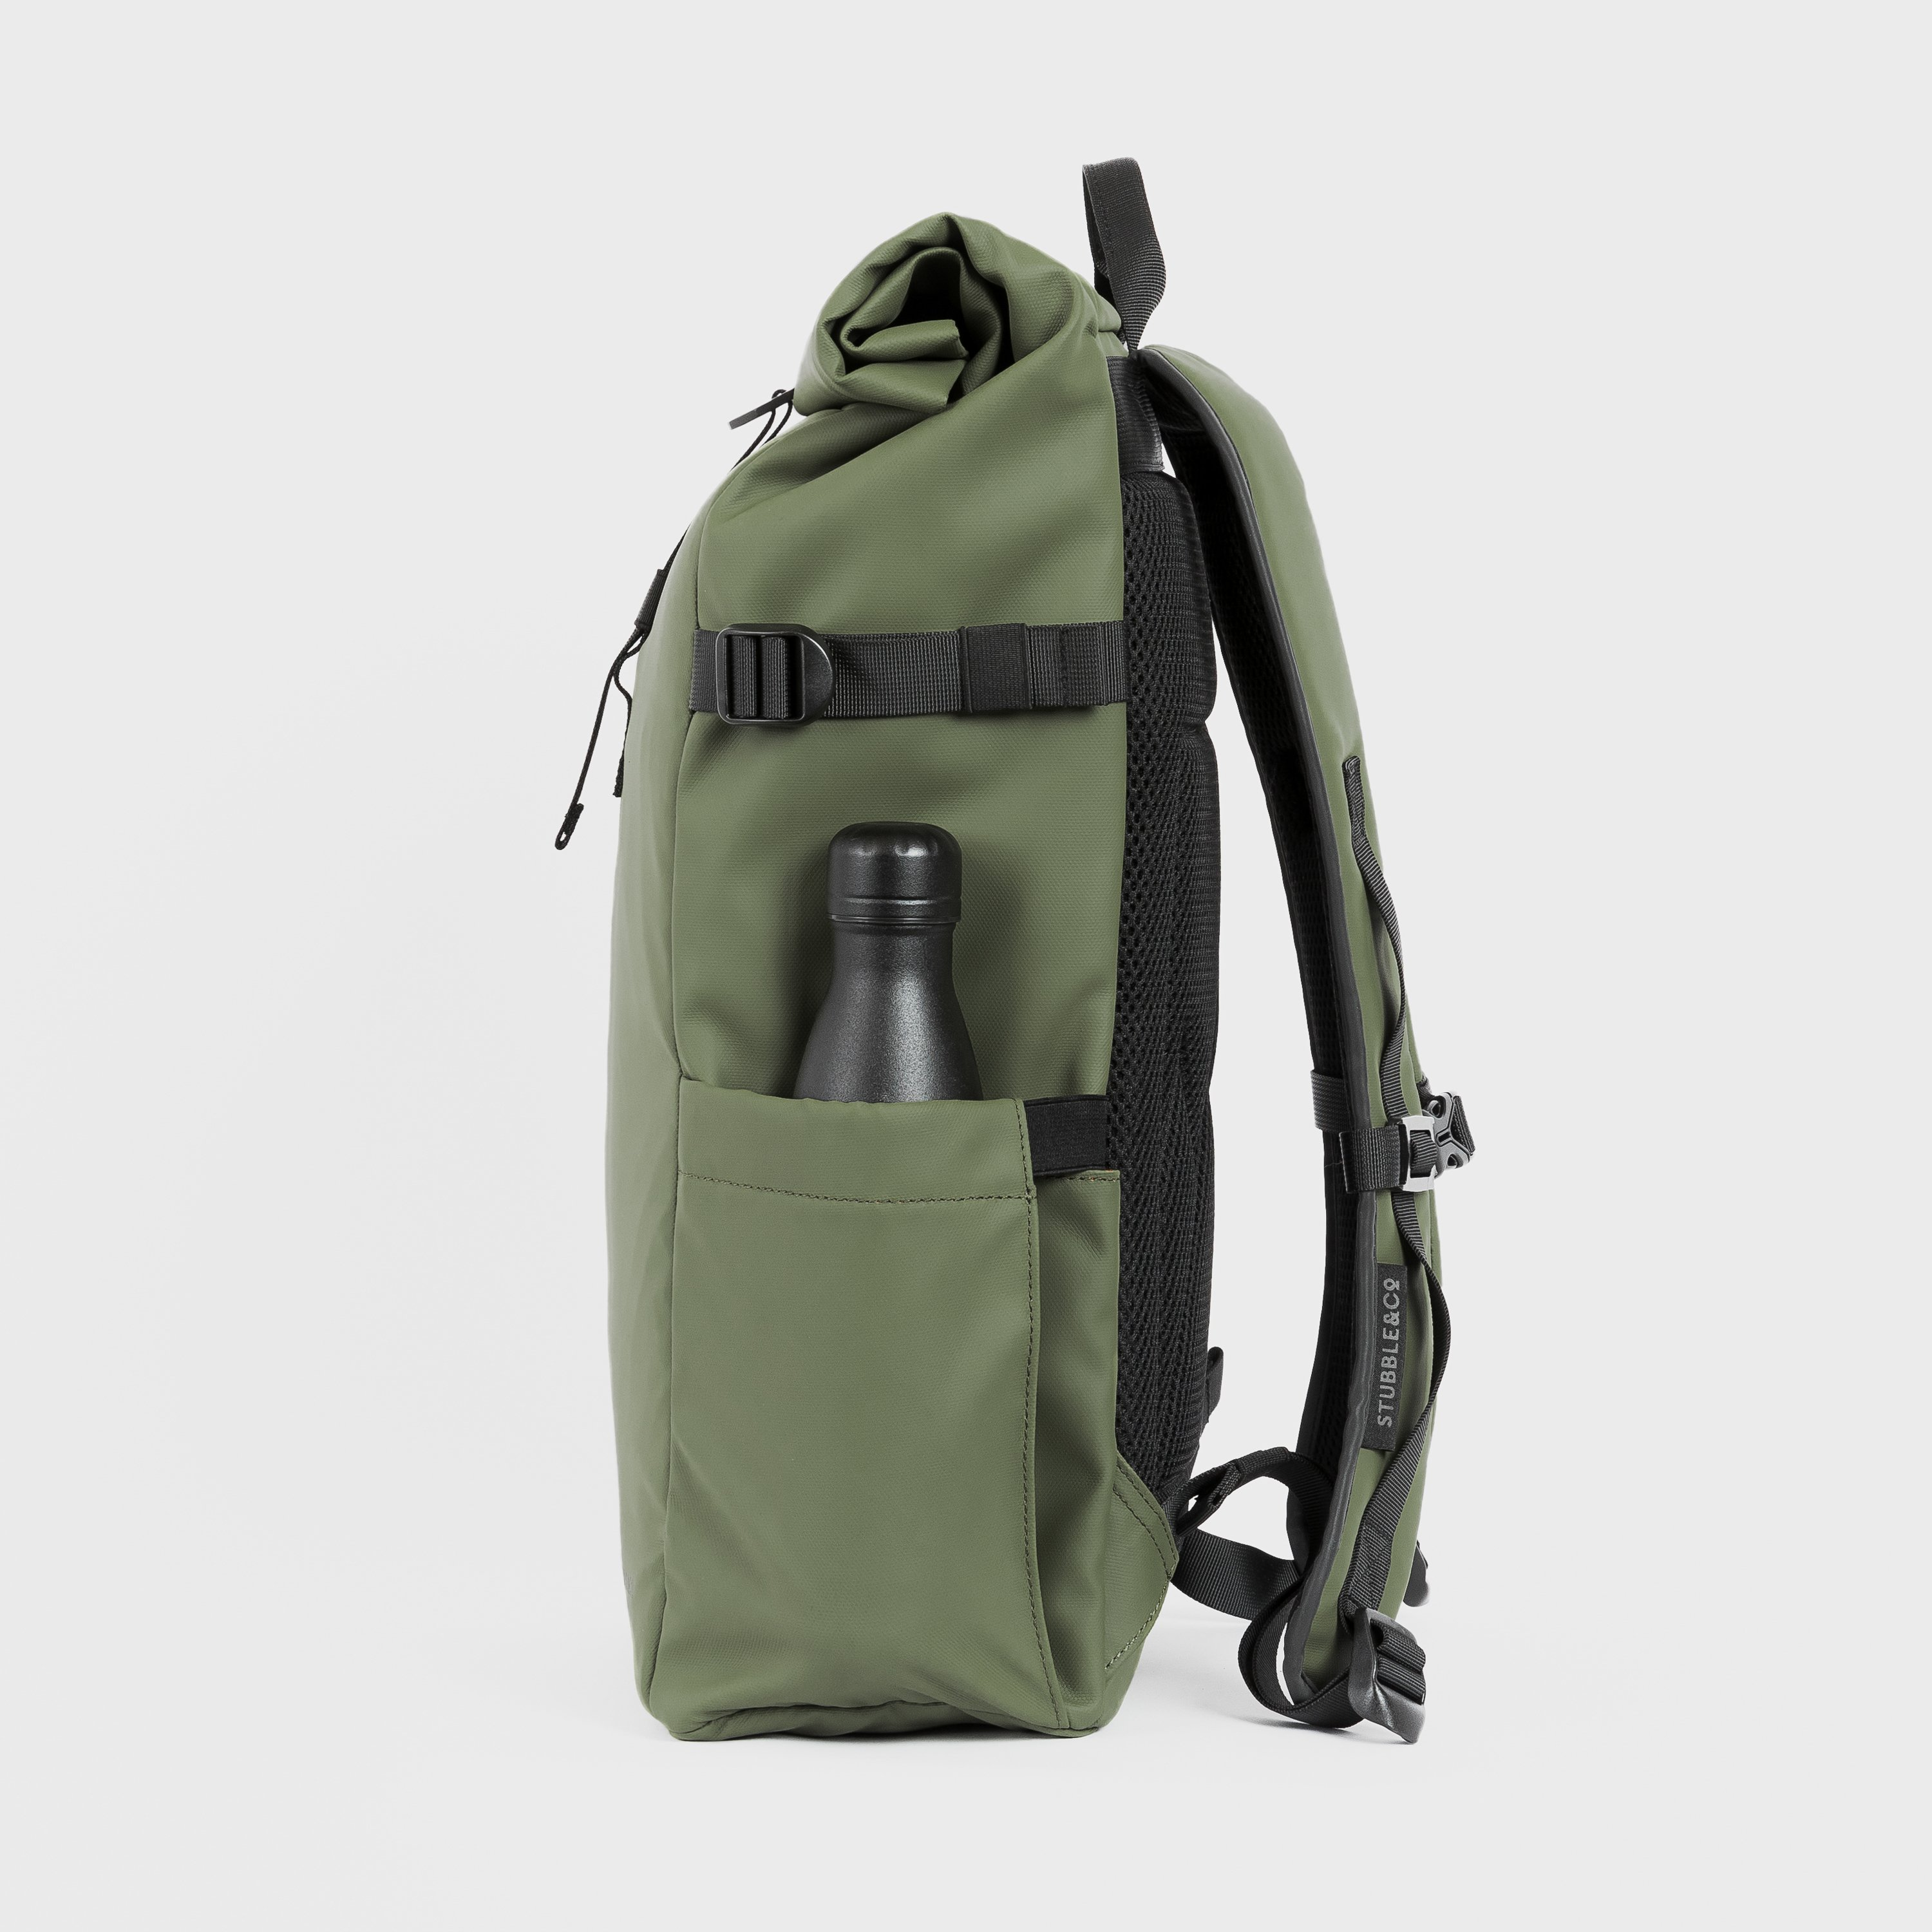 """The Roll Top. Made From Recycled Plastic. 16"""" Laptop Pocket., Urban Green"""